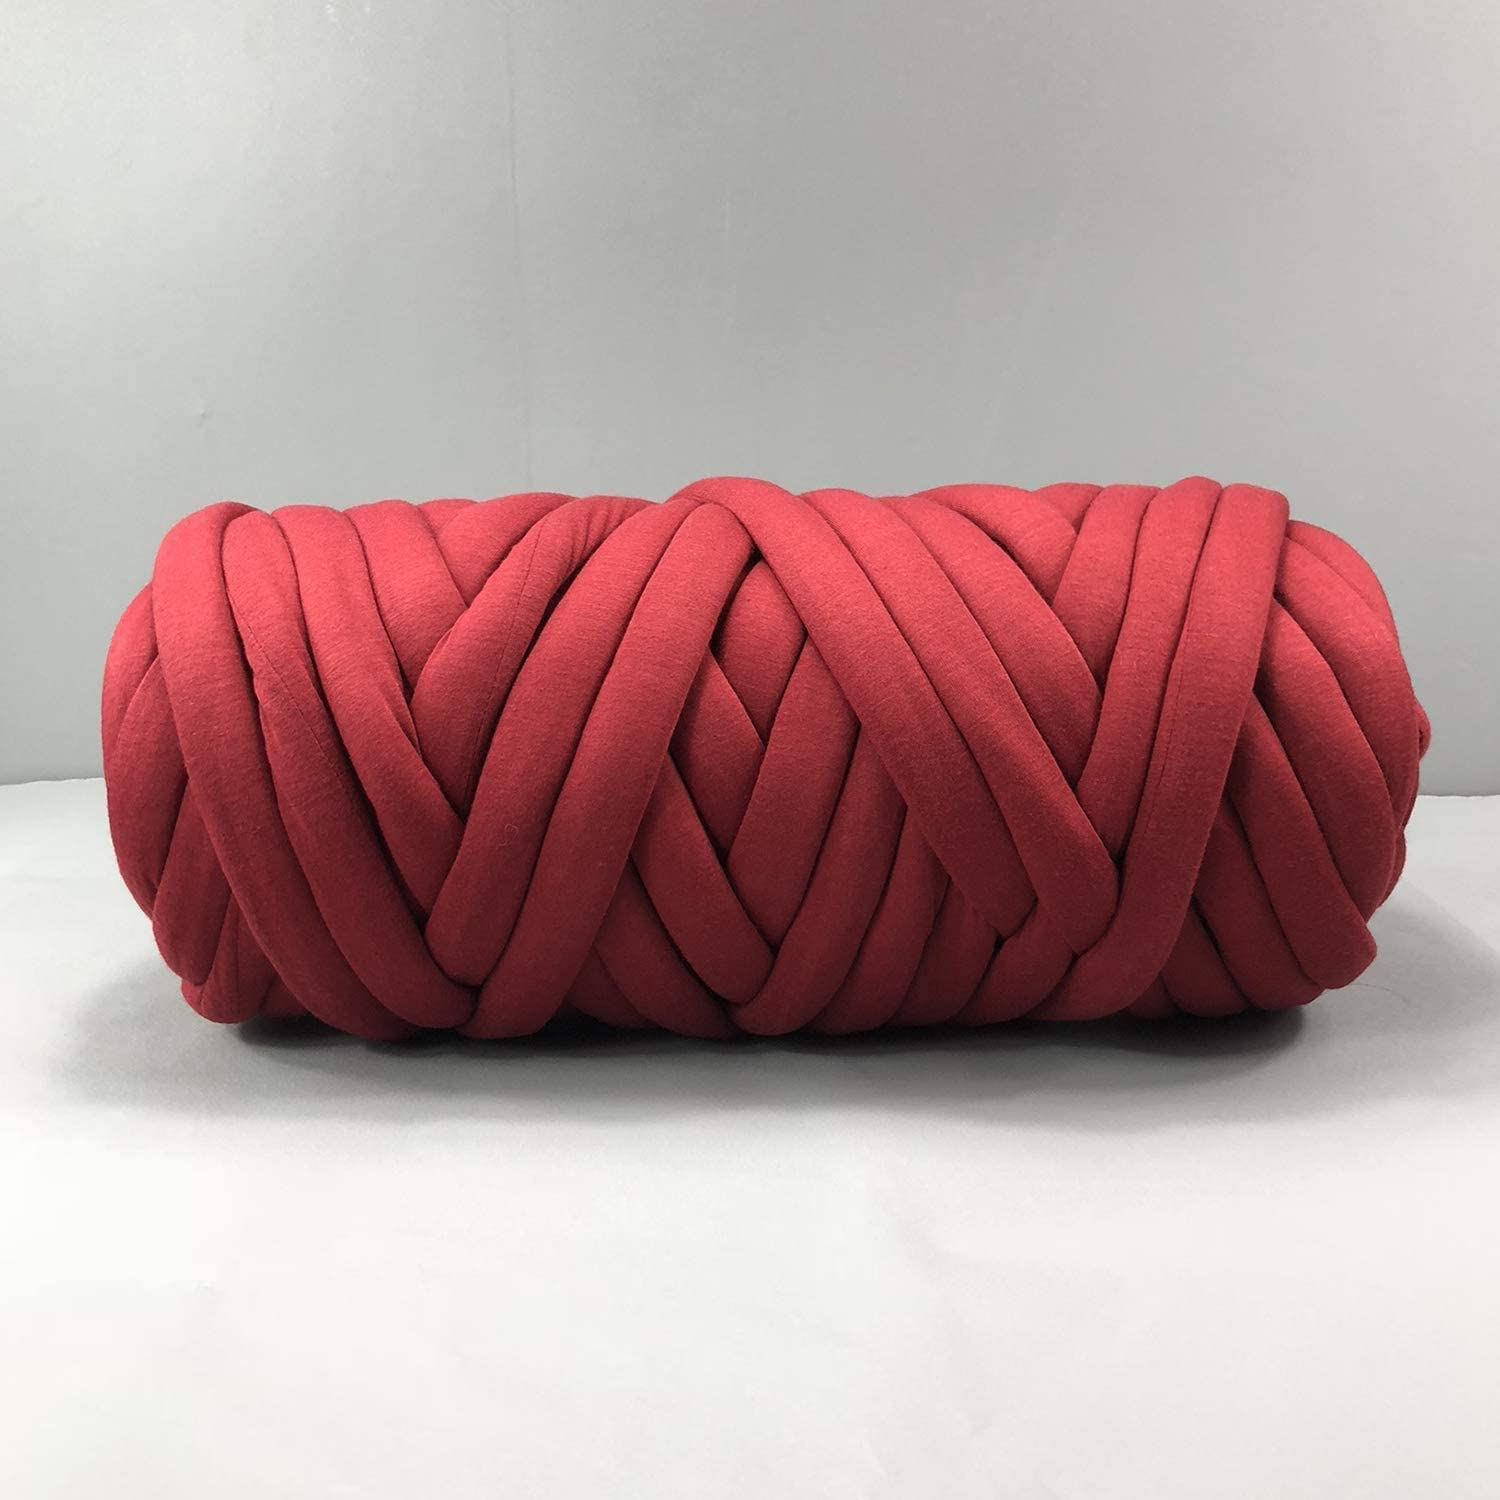 Braid Cotton Max 65% OFF Yarn Supre Large for Blan DIY Handmade arm Knitting Directly managed store